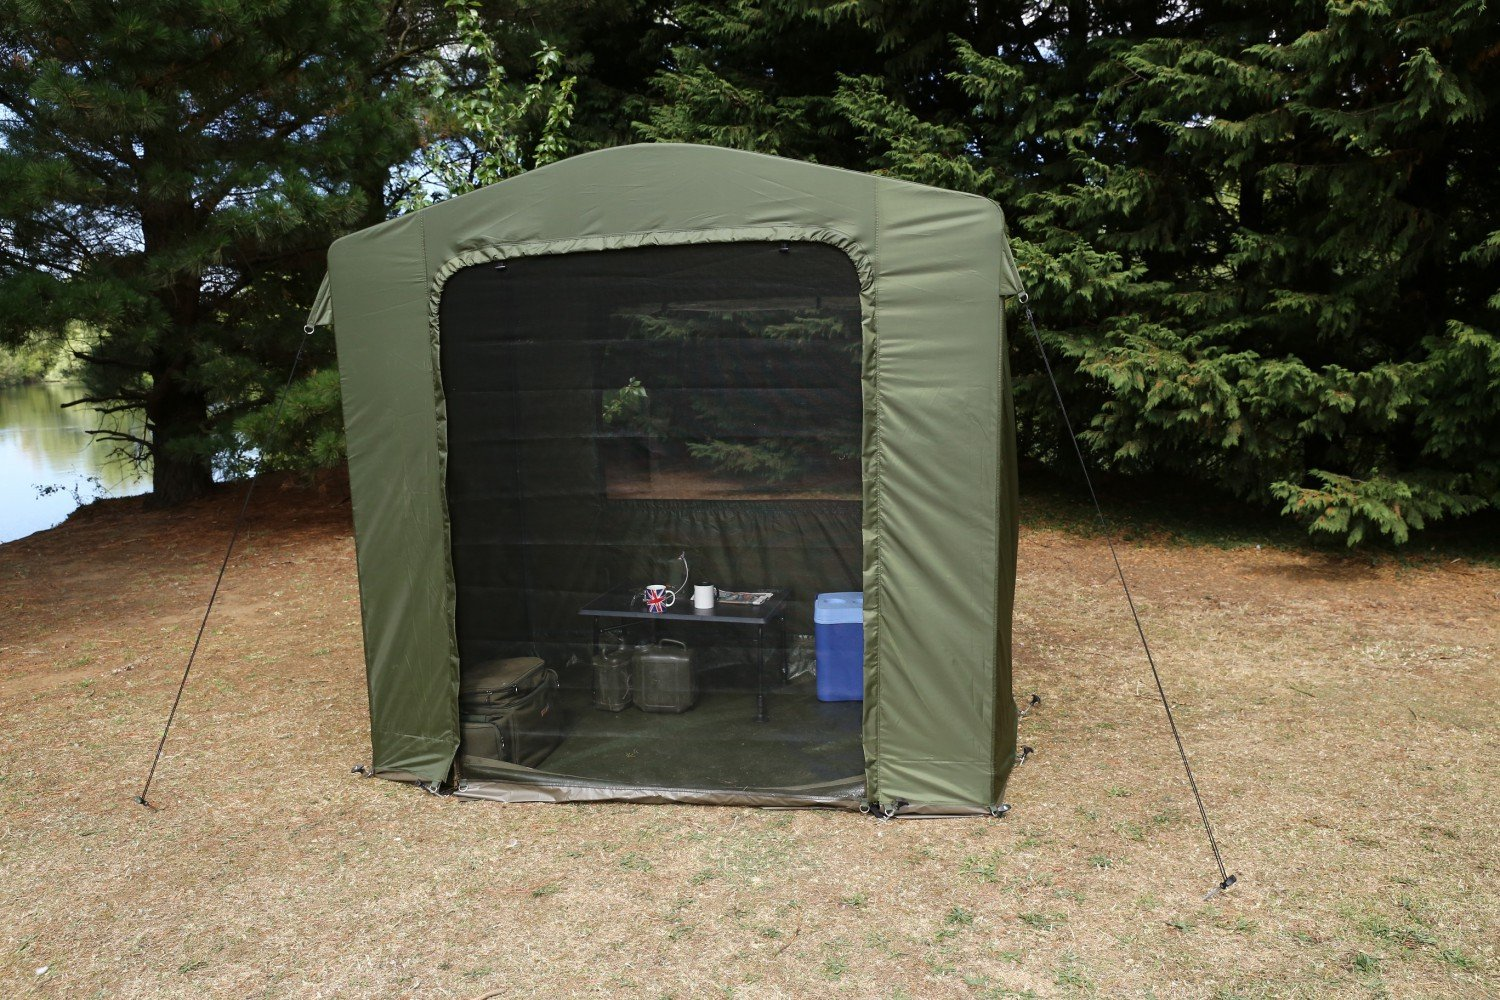 Fox Carp Fishing NEW Royale Cook Tent Station Amazon.co.uk Sports u0026 Outdoors & Fox Carp Fishing NEW Royale Cook Tent Station: Amazon.co.uk ...